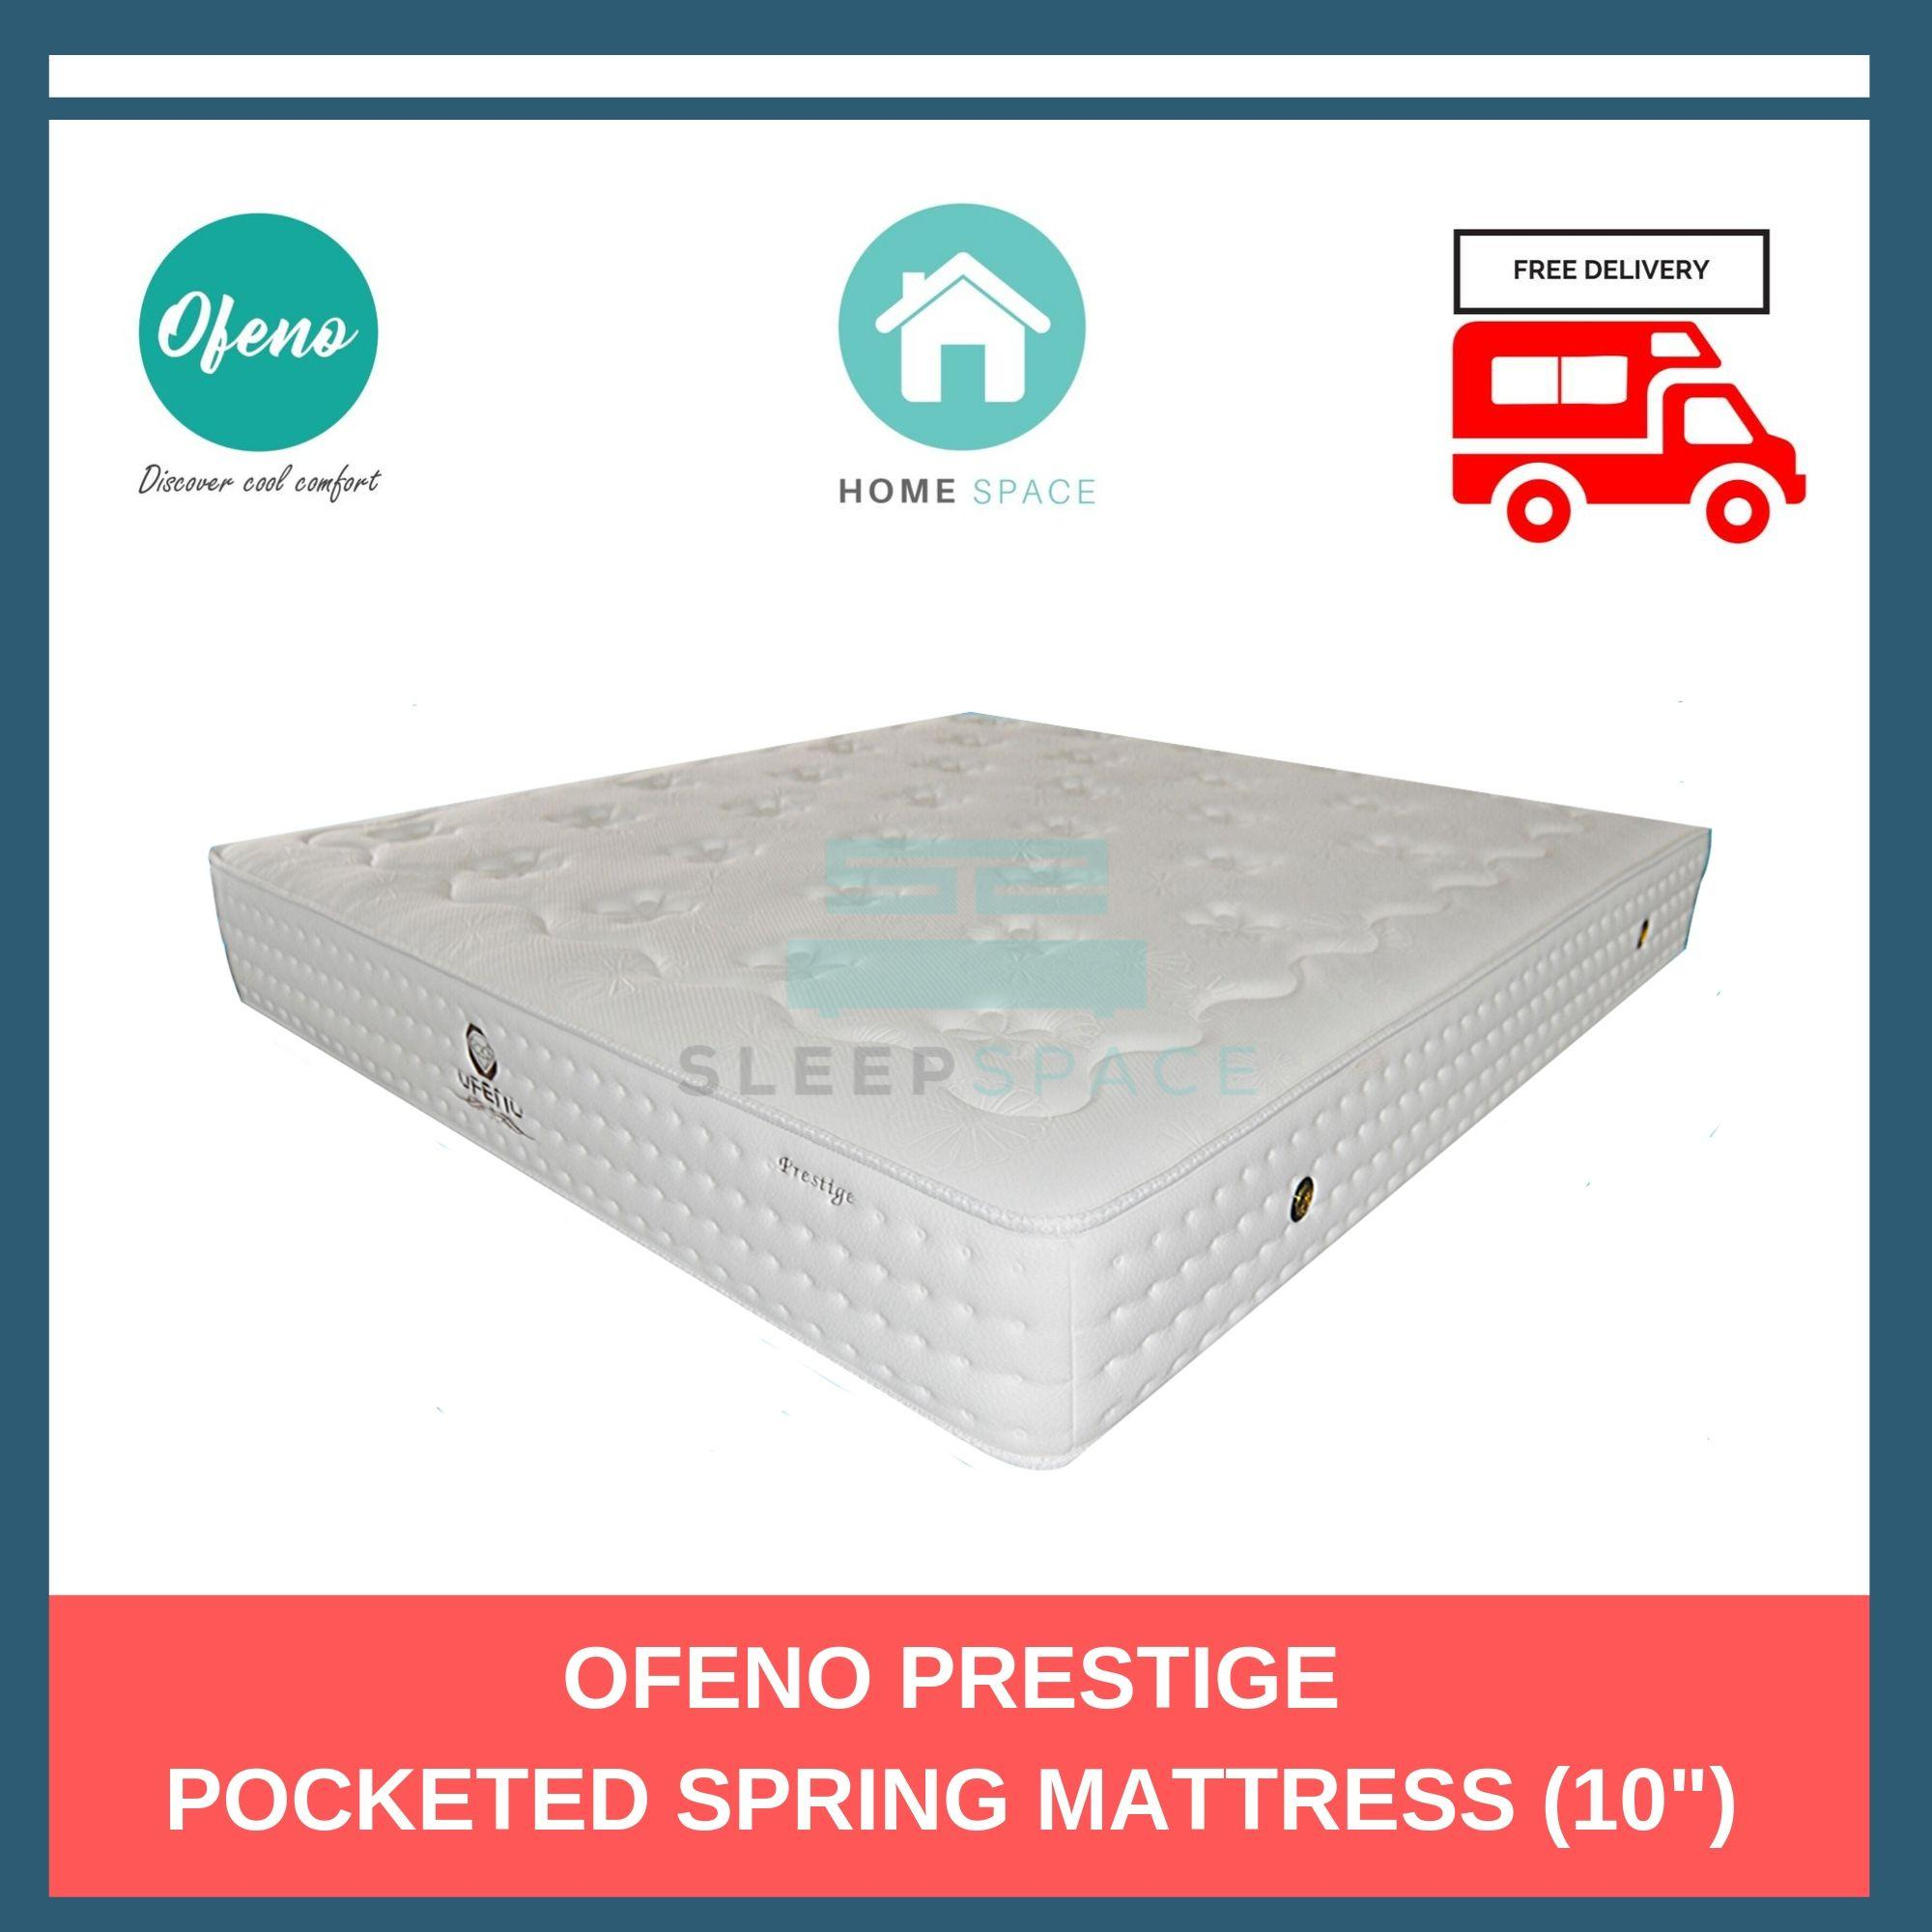 Ofeno Prestige Pocketed Spring Mattress + Free Delivery